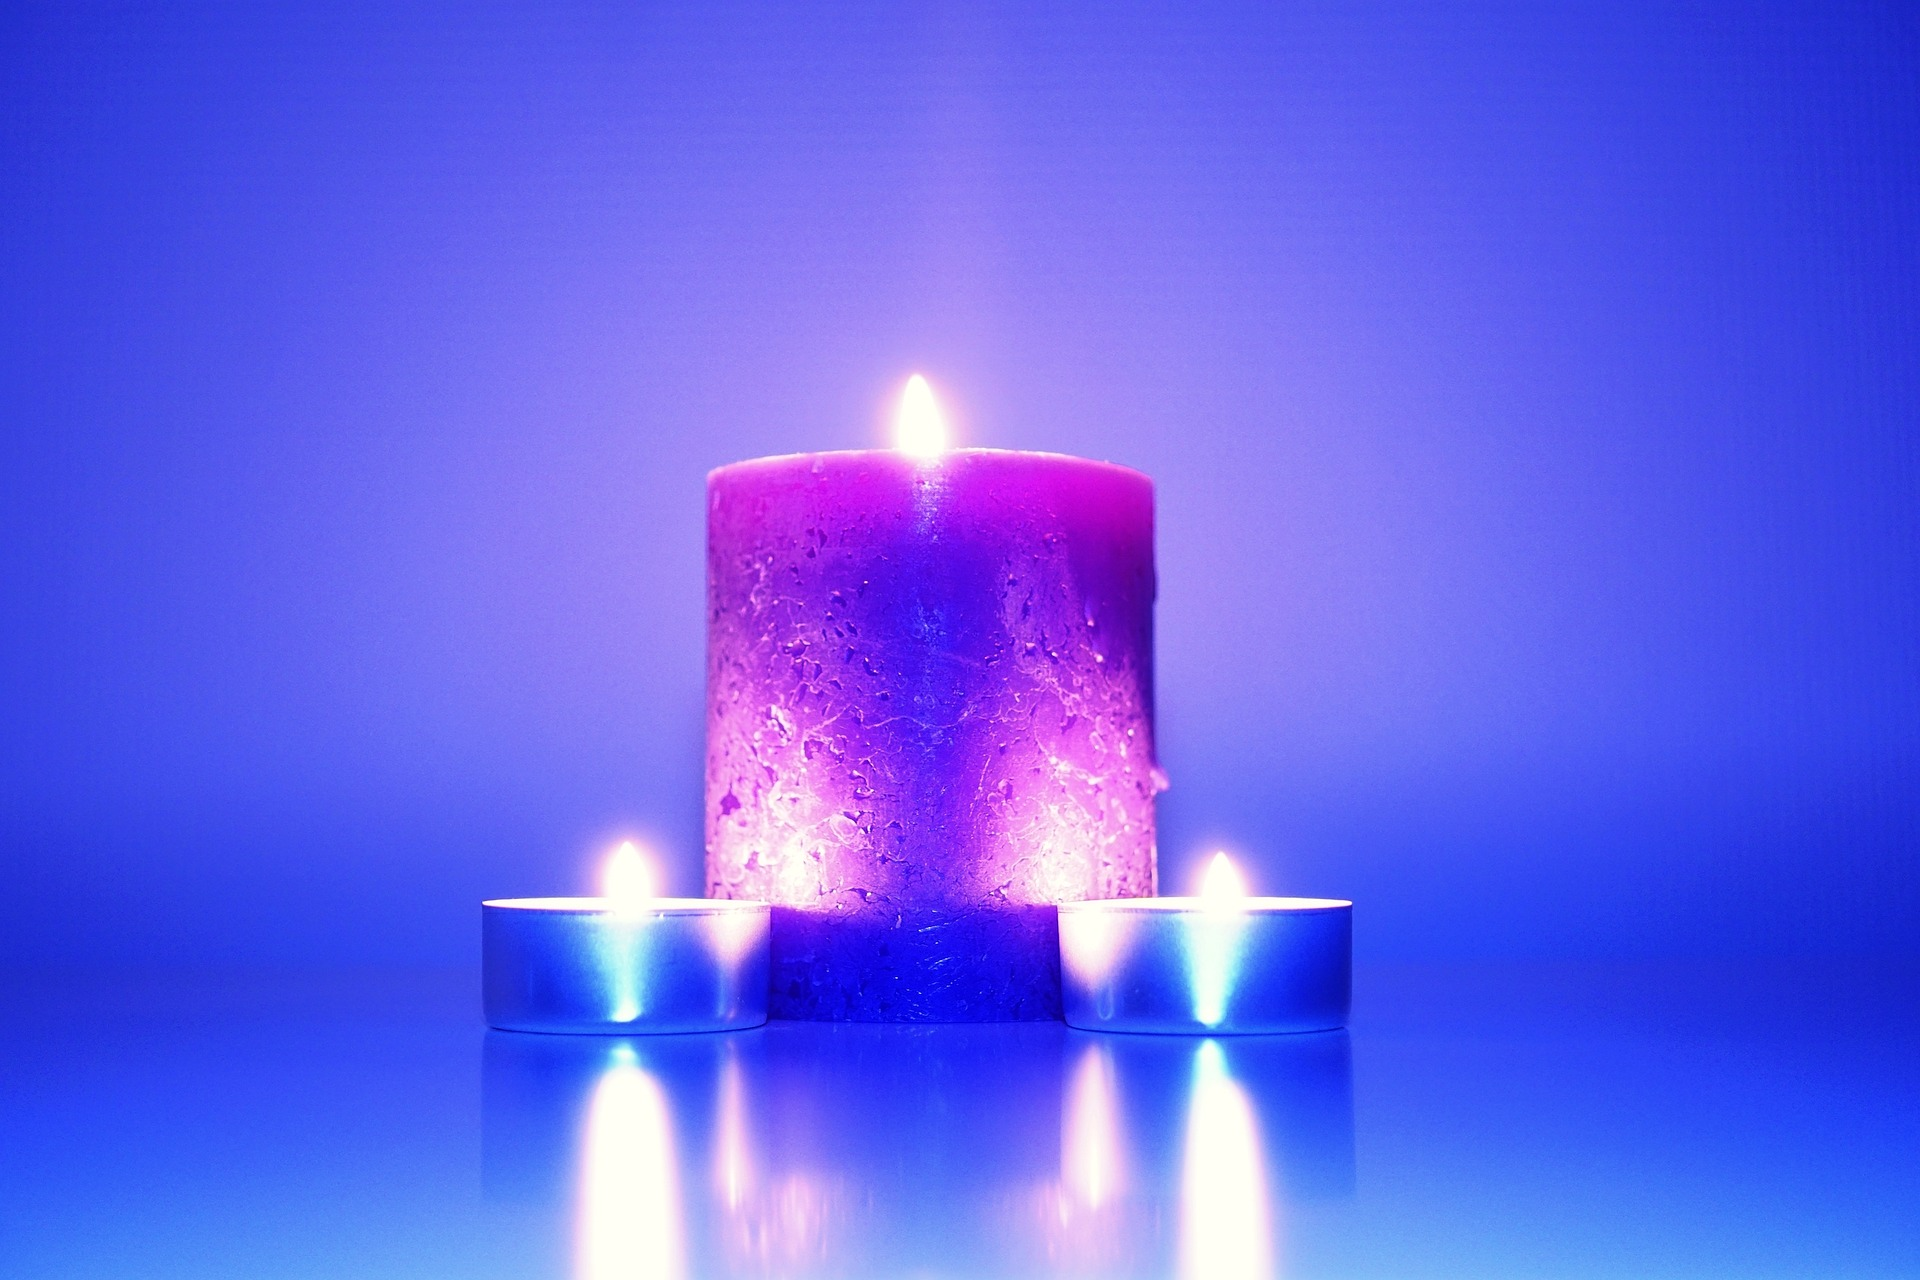 Pink candle burning in front of a purple background